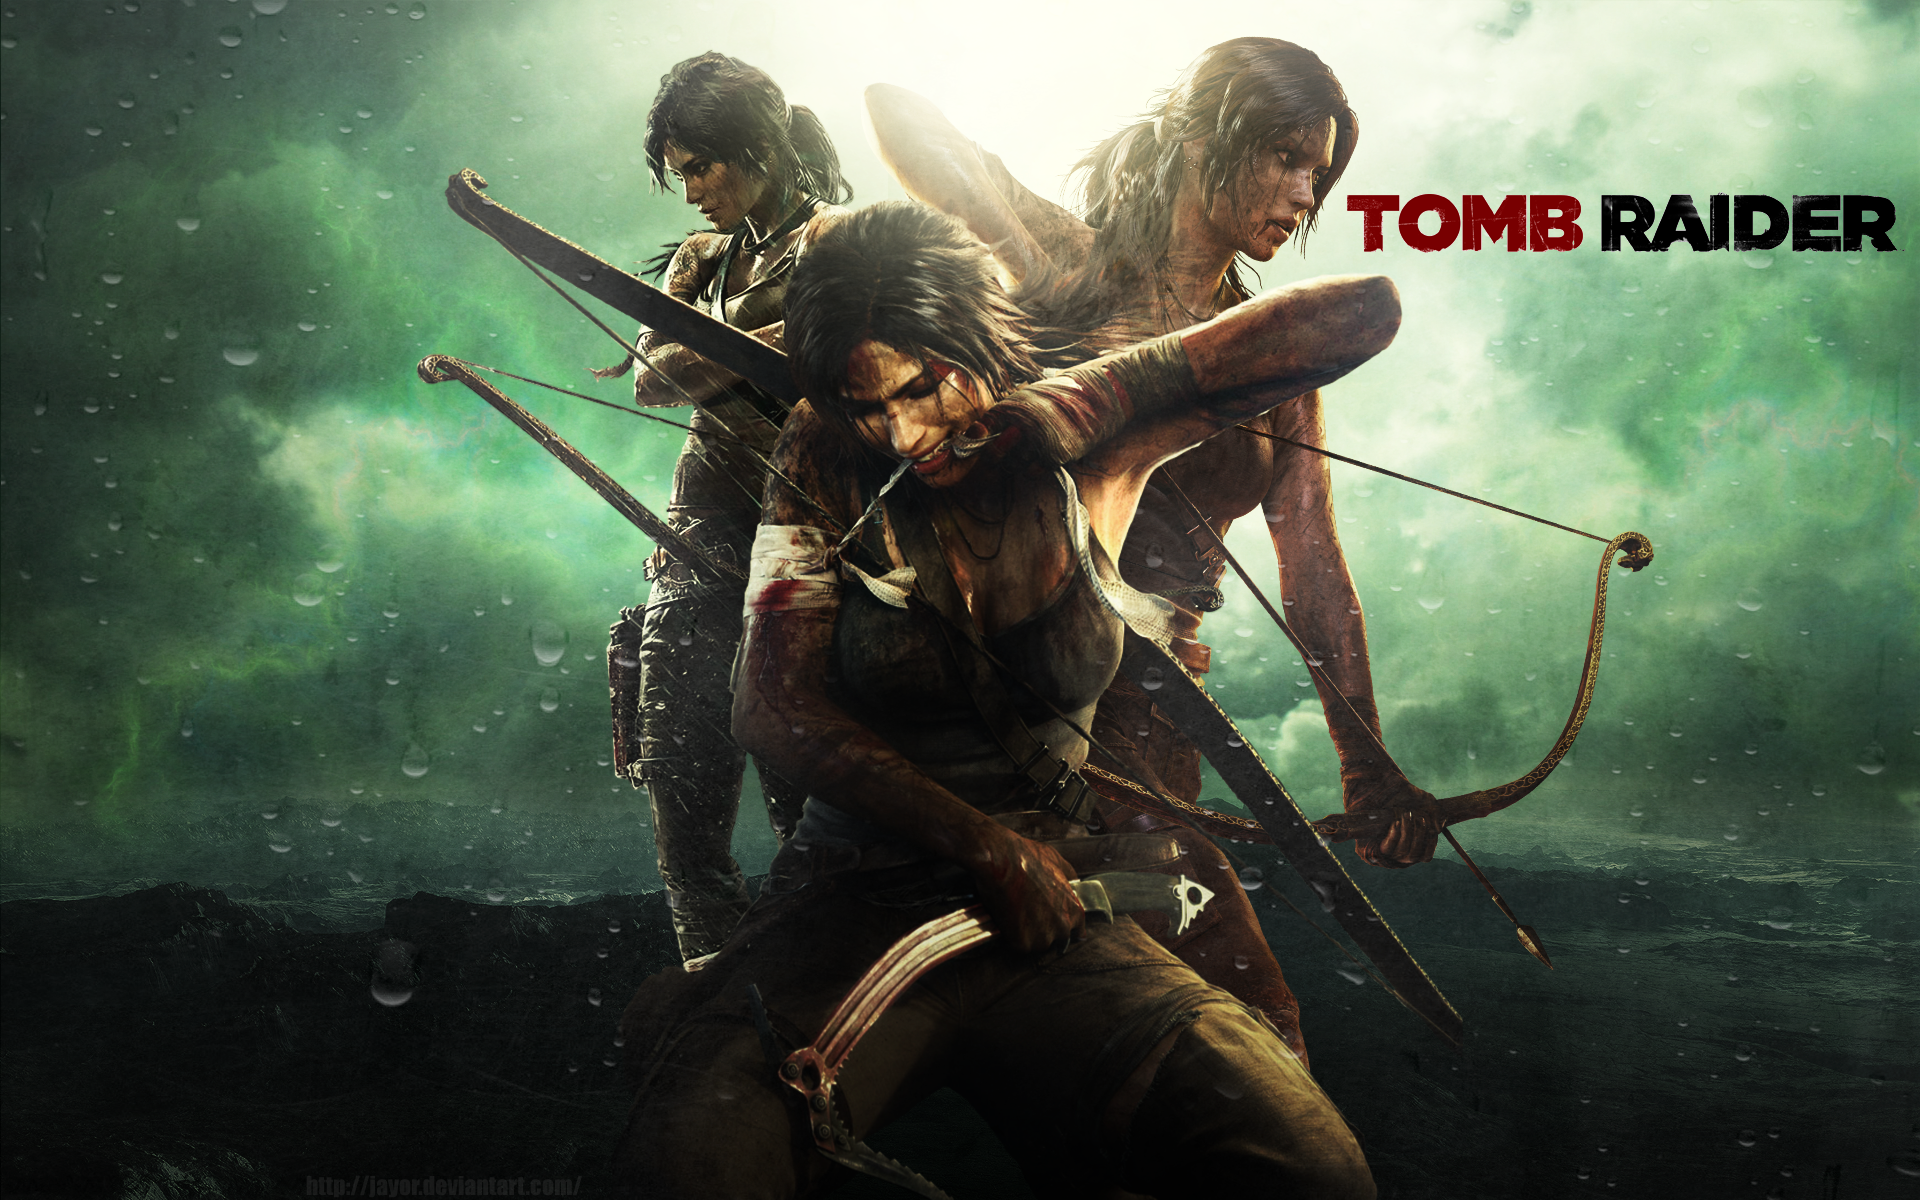 Beautiful Tomb Raider Wallpaper | BsnSCB